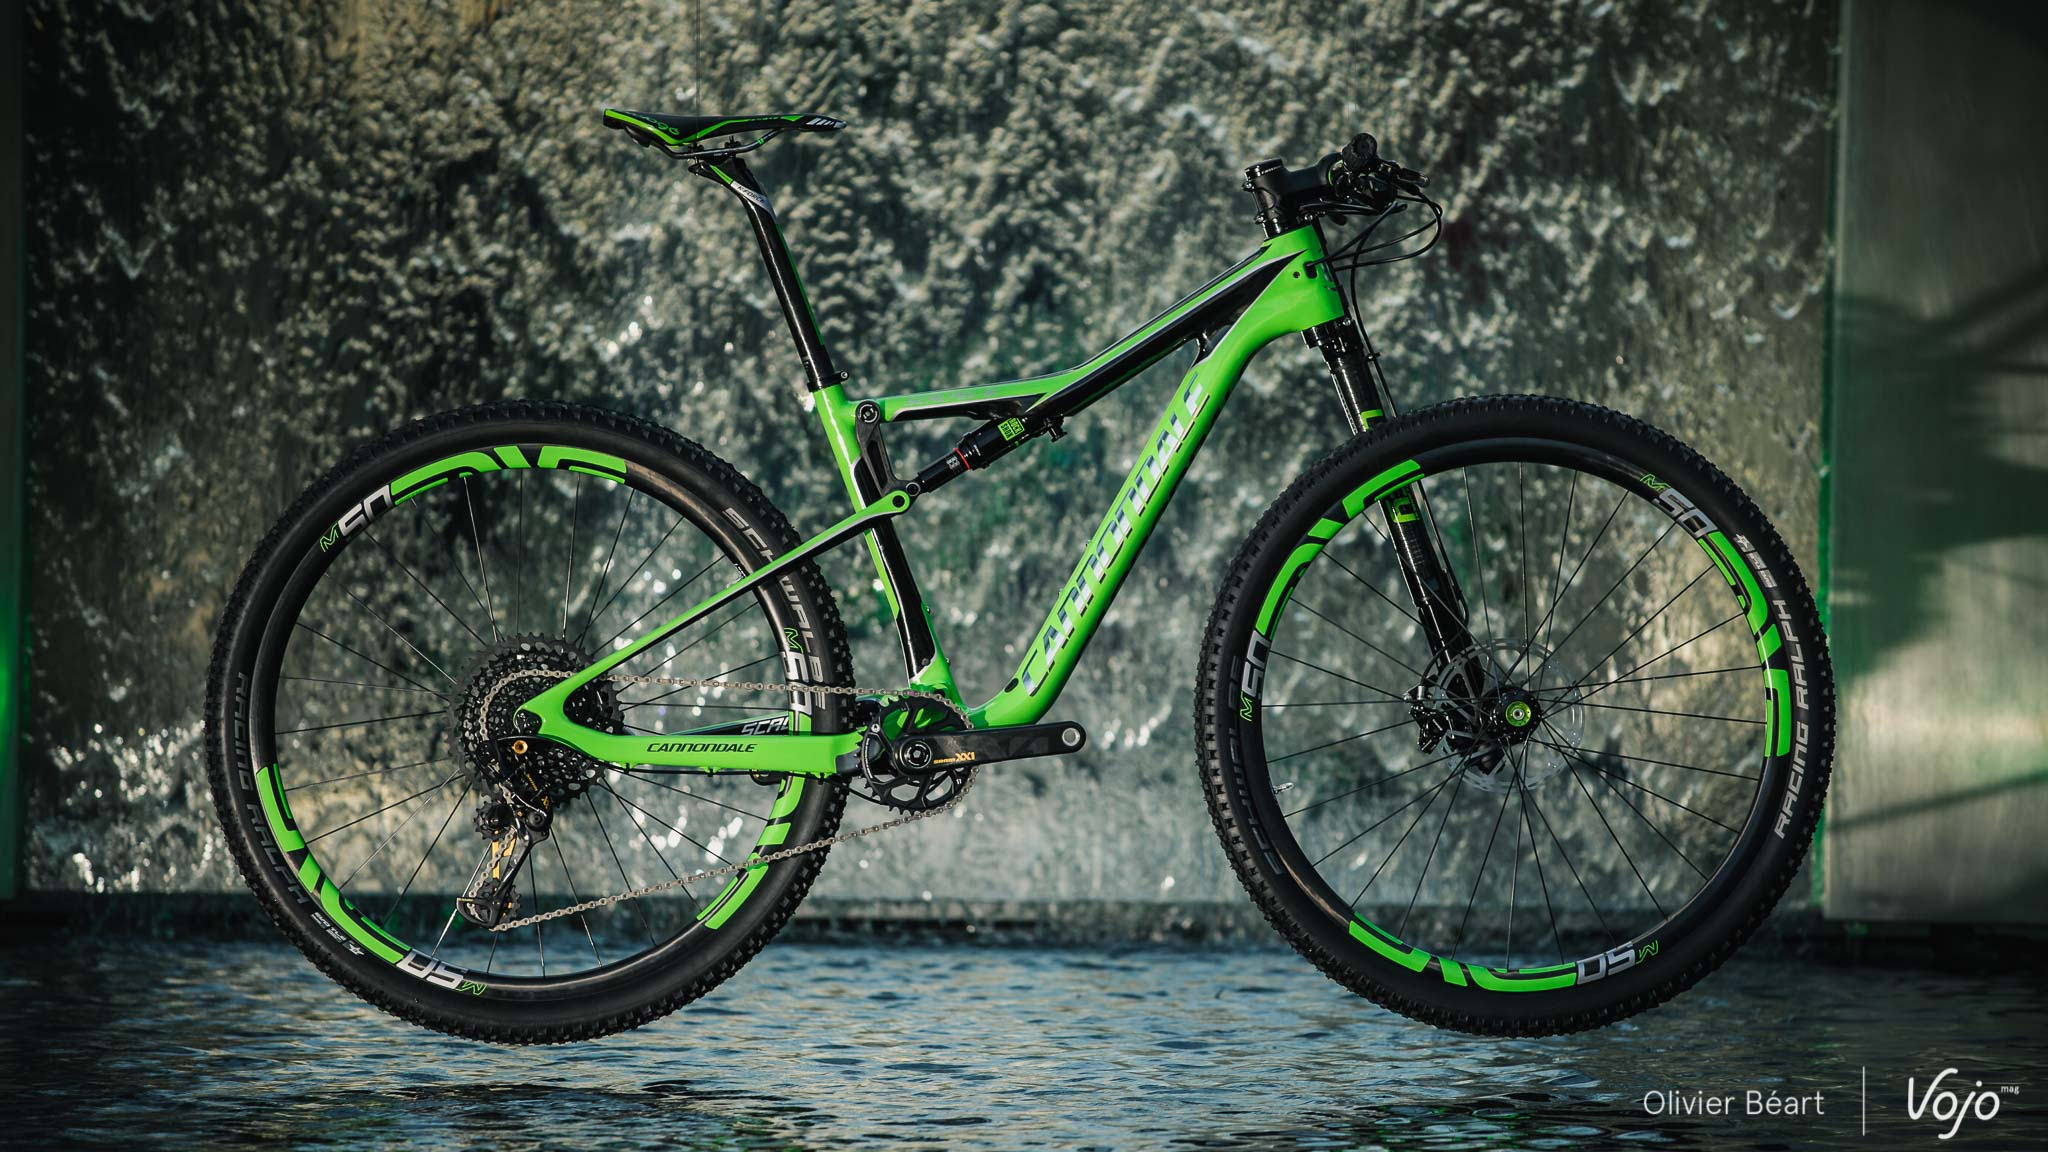 Cannondale_Scalpel_2017_Copyright_OBeart_VojoMag-1-5